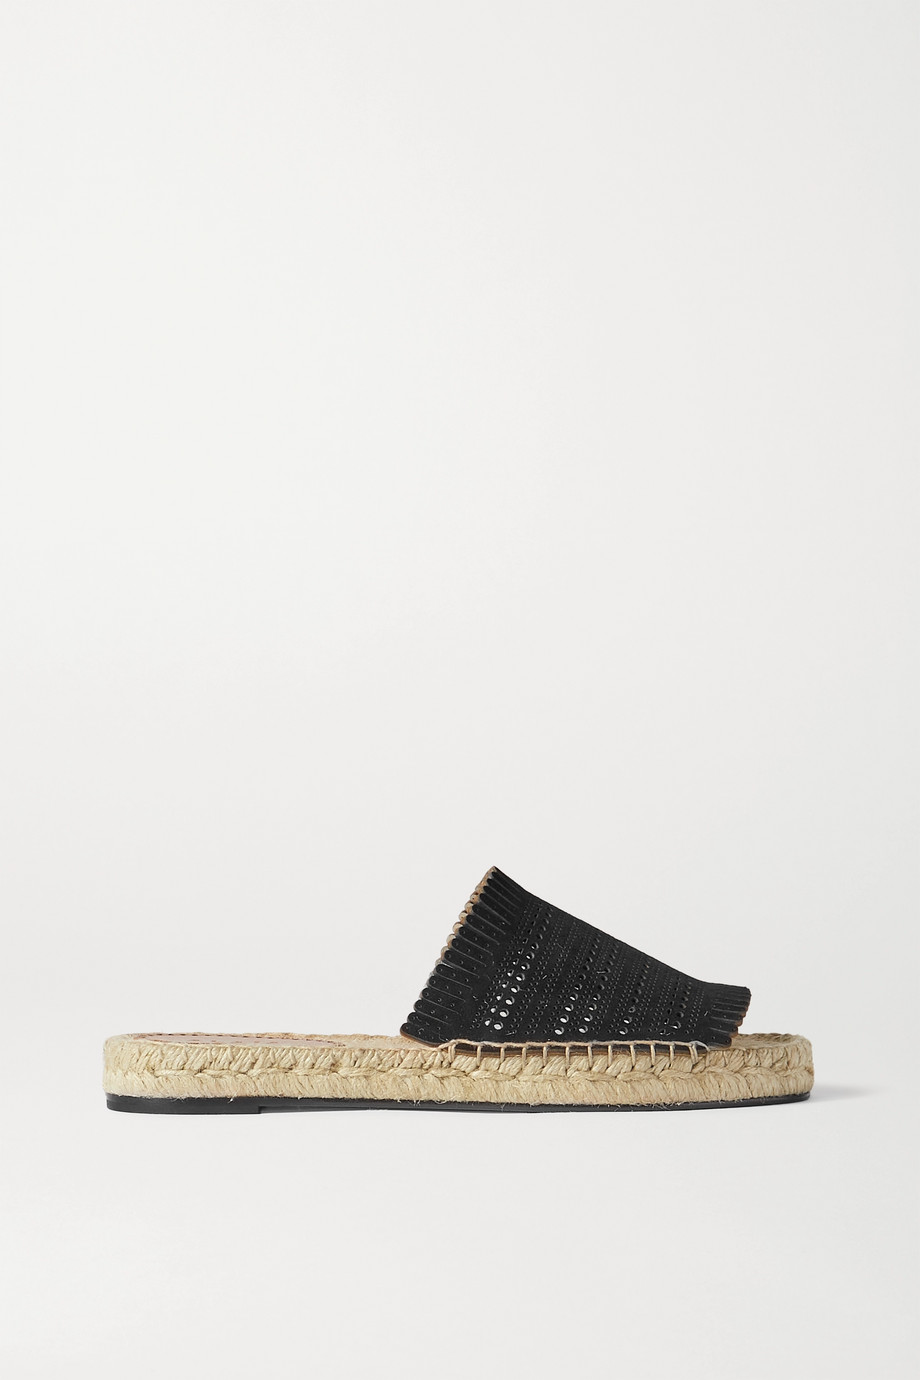 Alaïa Fringed laser-cut leather espadrille slides